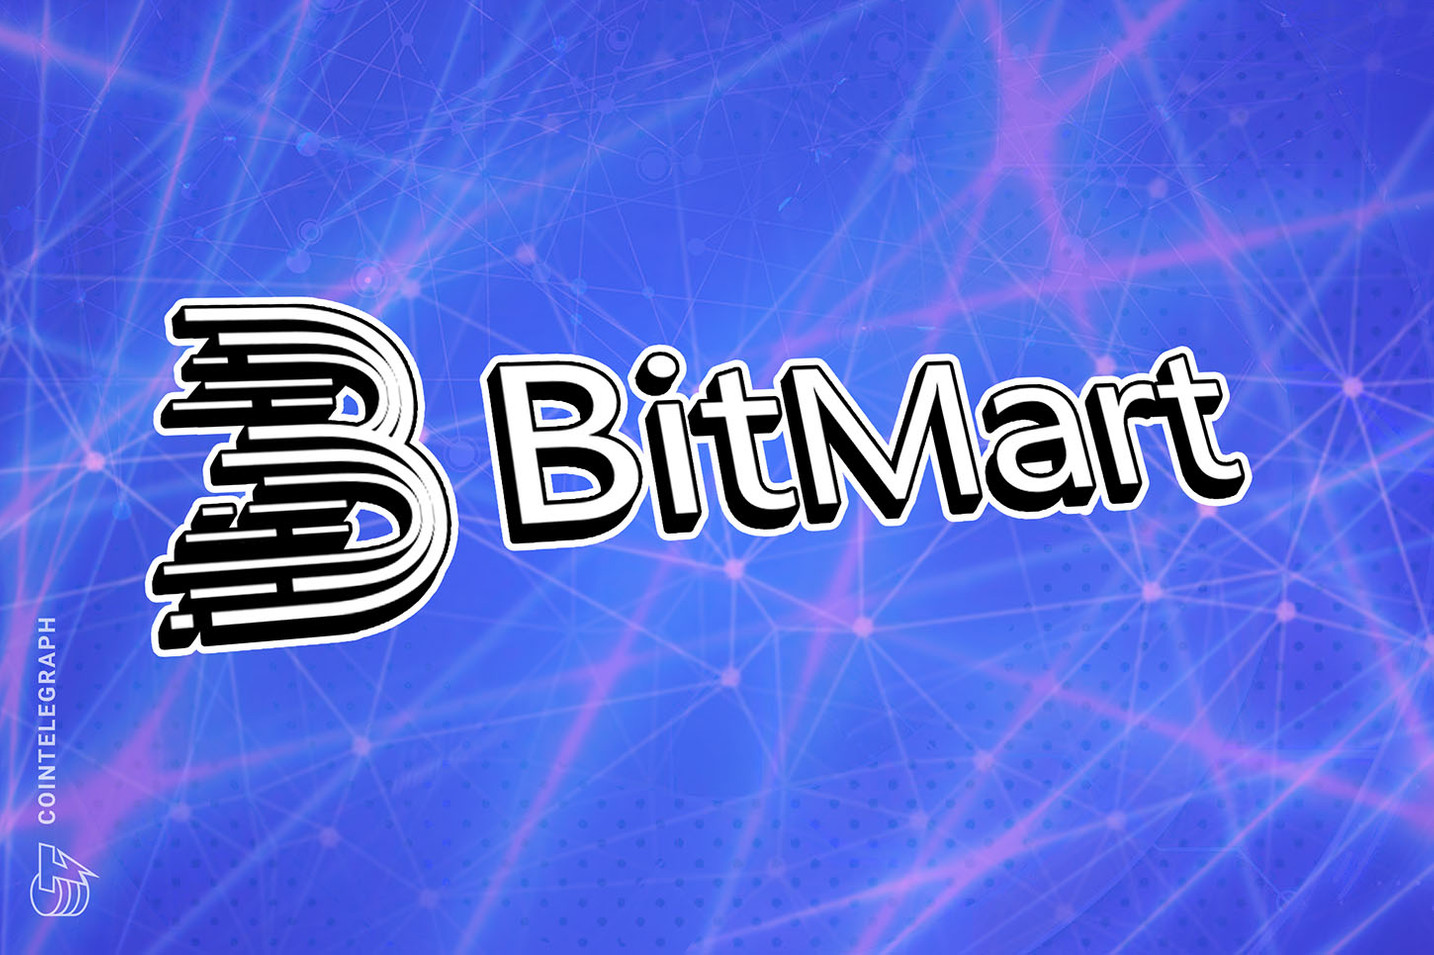 BitMart's 3rd anniversary starts today — 5 BTC giveaway